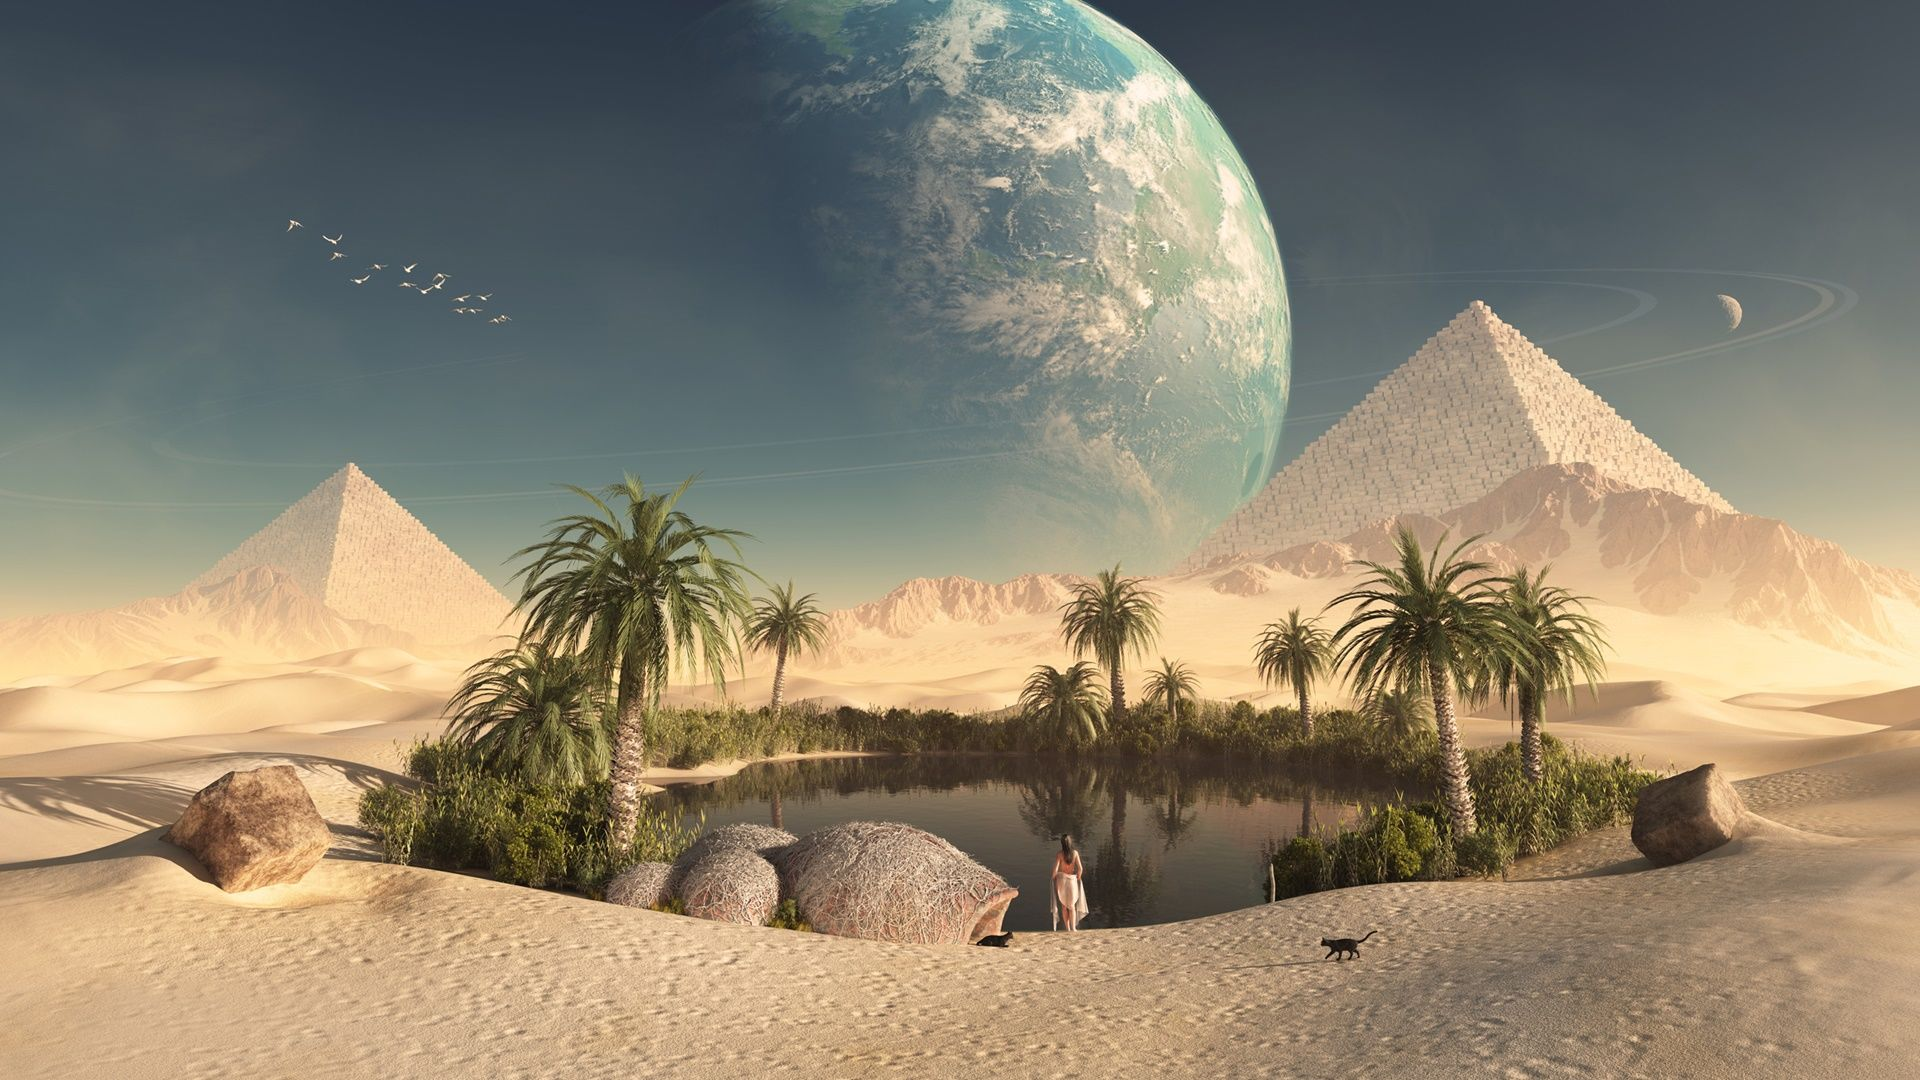 Amazing Hd Desktop Wallpapers From Egypt Funotic Com